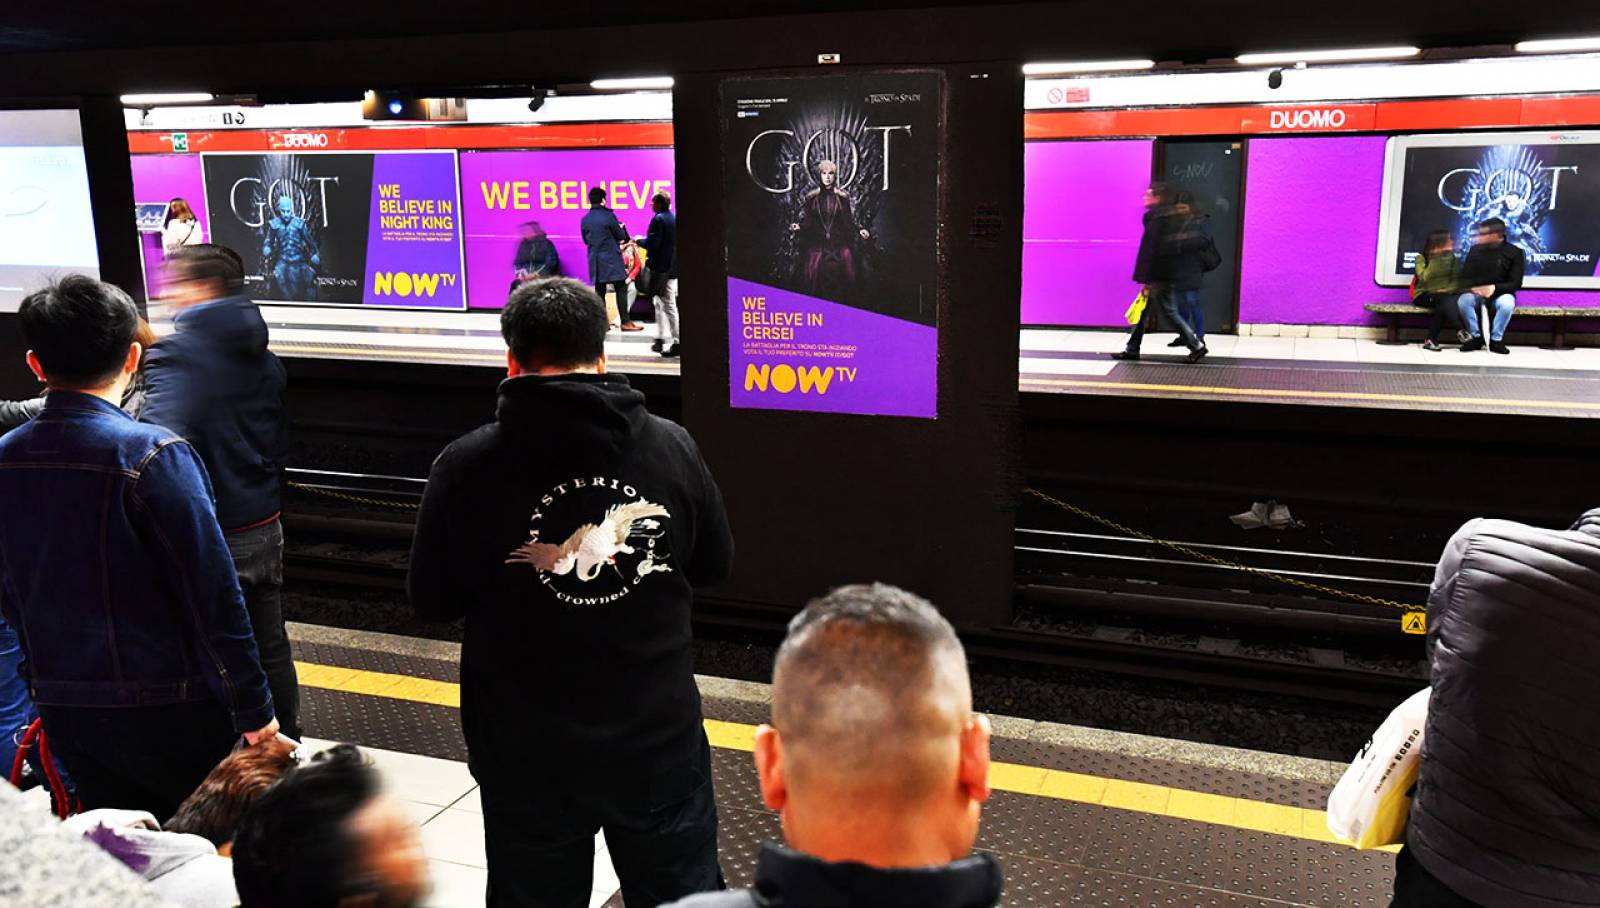 Pubblicità Out of Home in metropolitana a Milano IGPDecaux Station Domination per il Trono di Spade Now TV